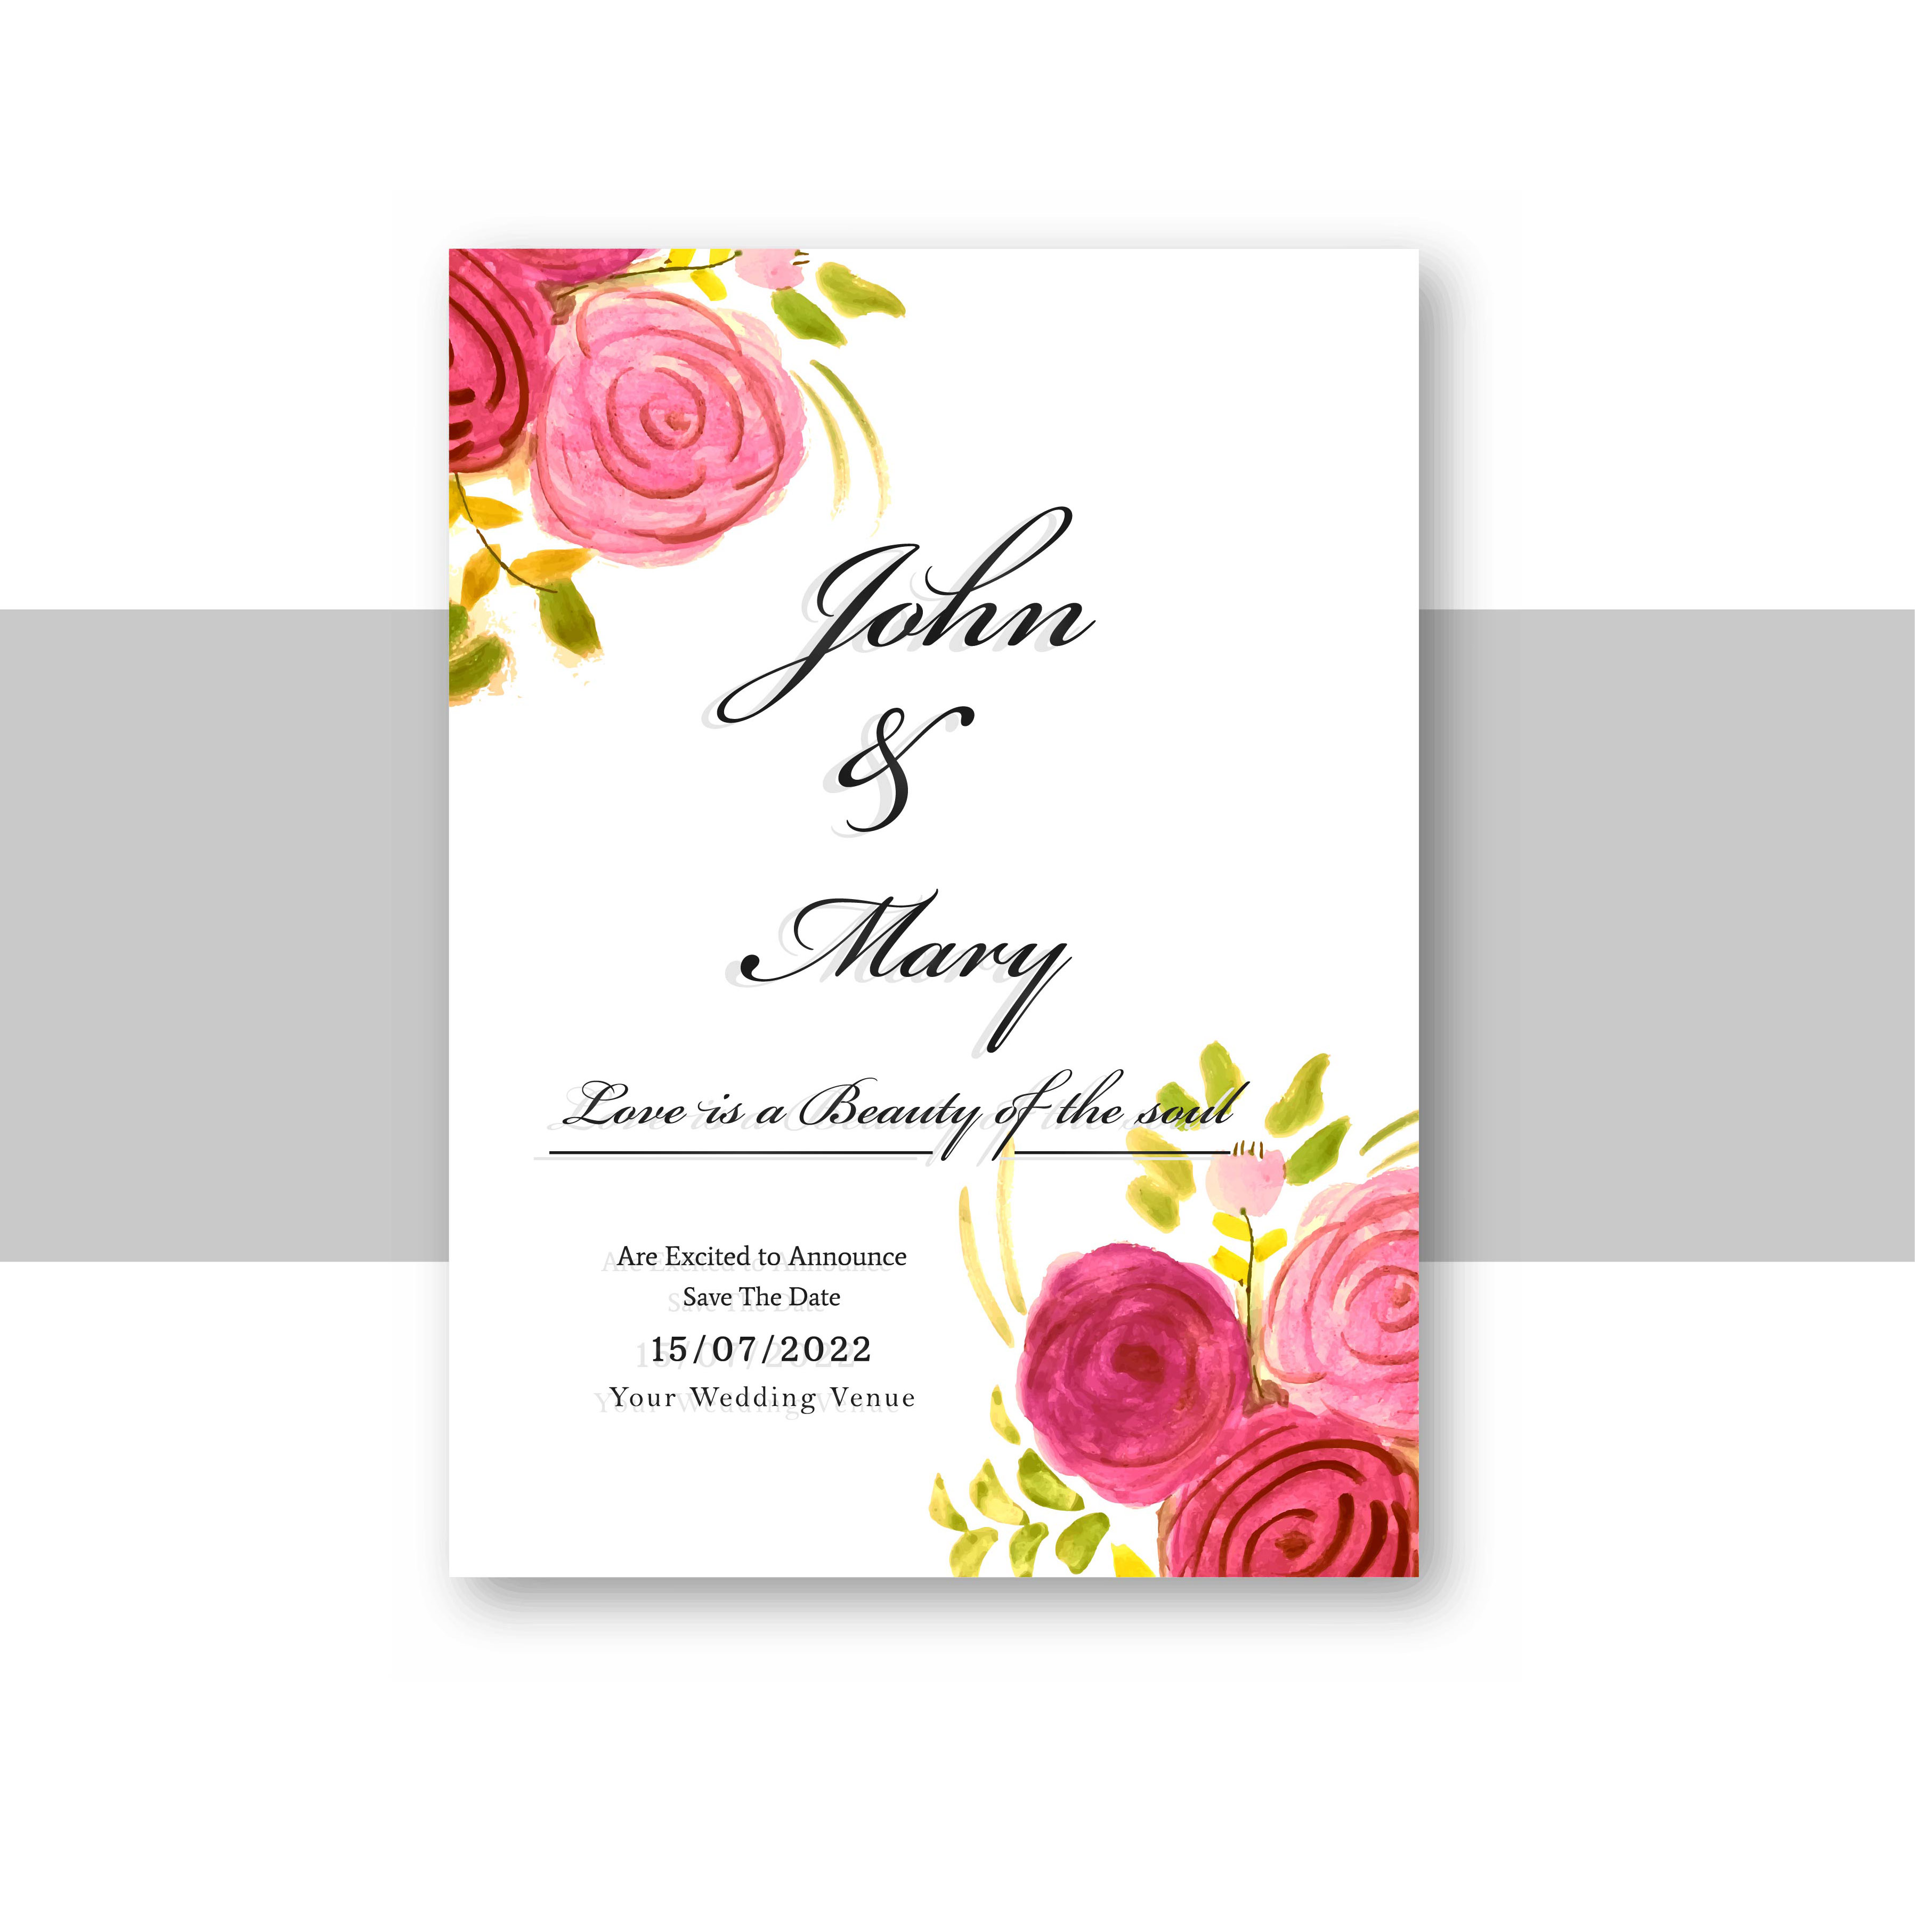 Invitation Card Template Video: Wedding Invitation Card Template With Decorative Floral